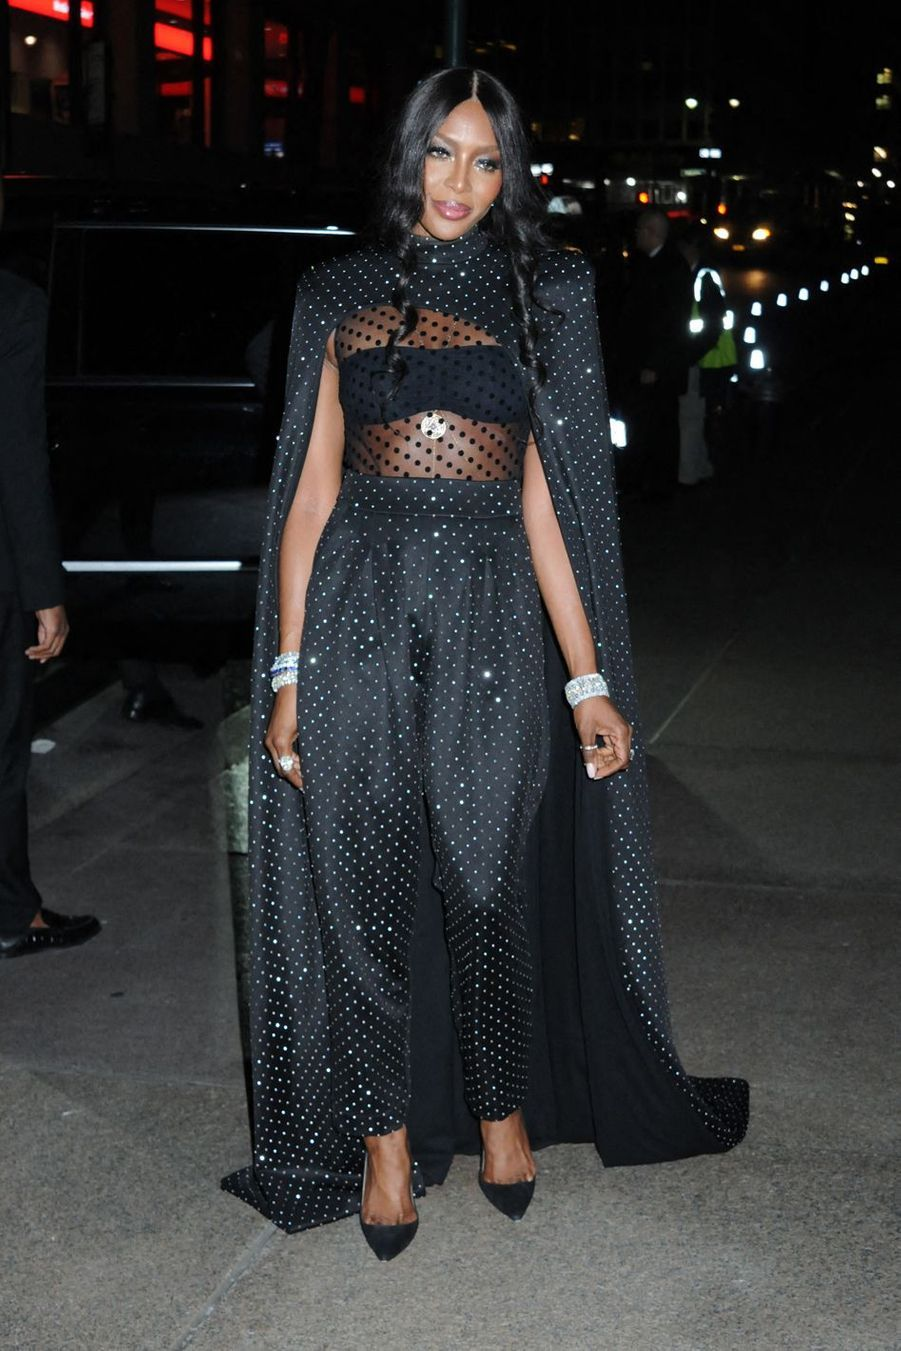 Naomi Campbell au mariage de Marc Jacobs et Char Defrancesco à New York le 6 avril 2019